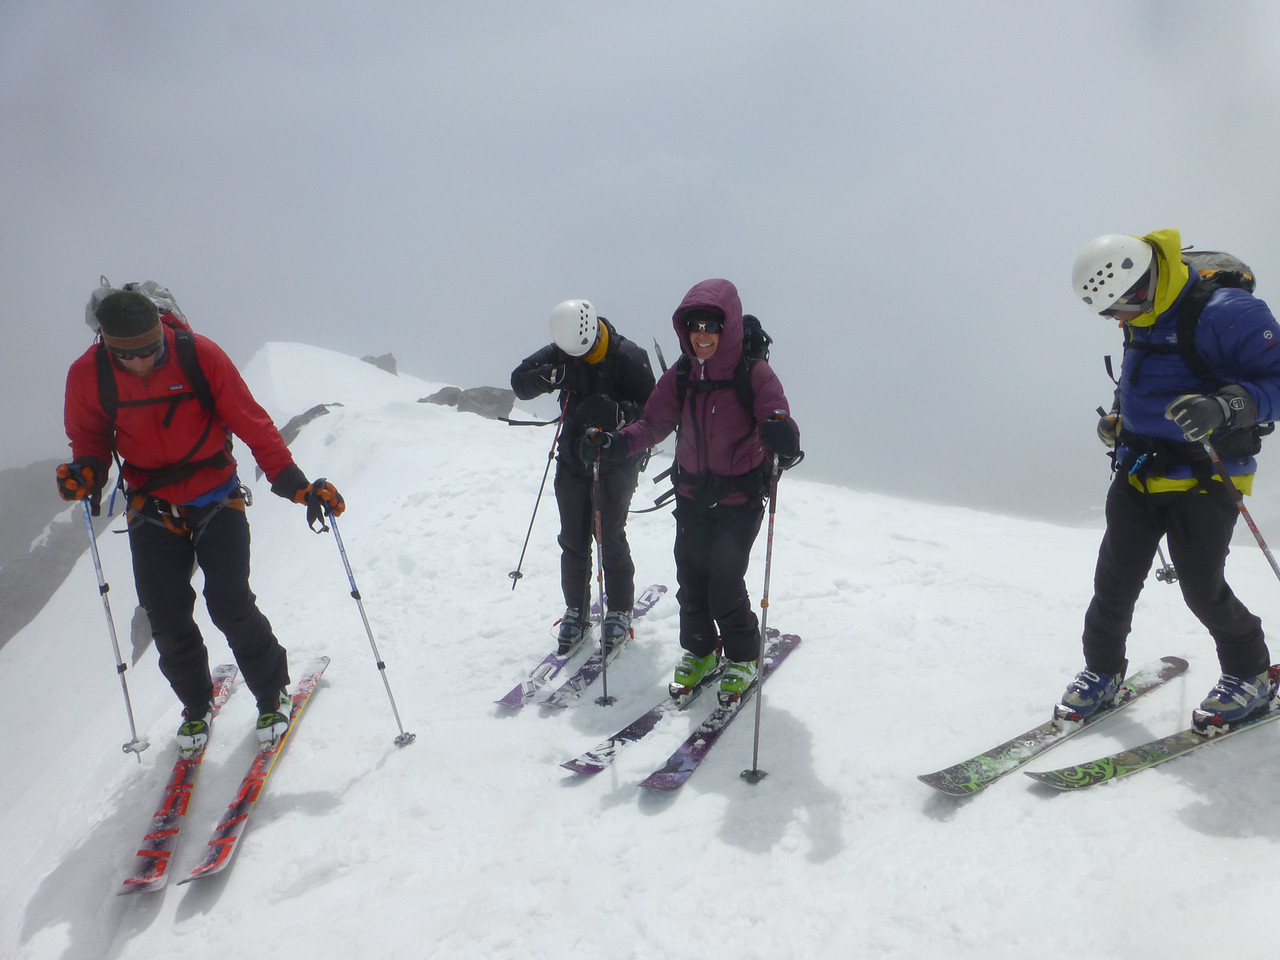 Saturday's high point of 10,000 feet, Giddy Giddy saddle, followed by a descent with beautiful snow off Casaval Ridge into Avalanch Gulch.  A great day of skills practice and skiing.  Best snow on Shasta I've seen this season.